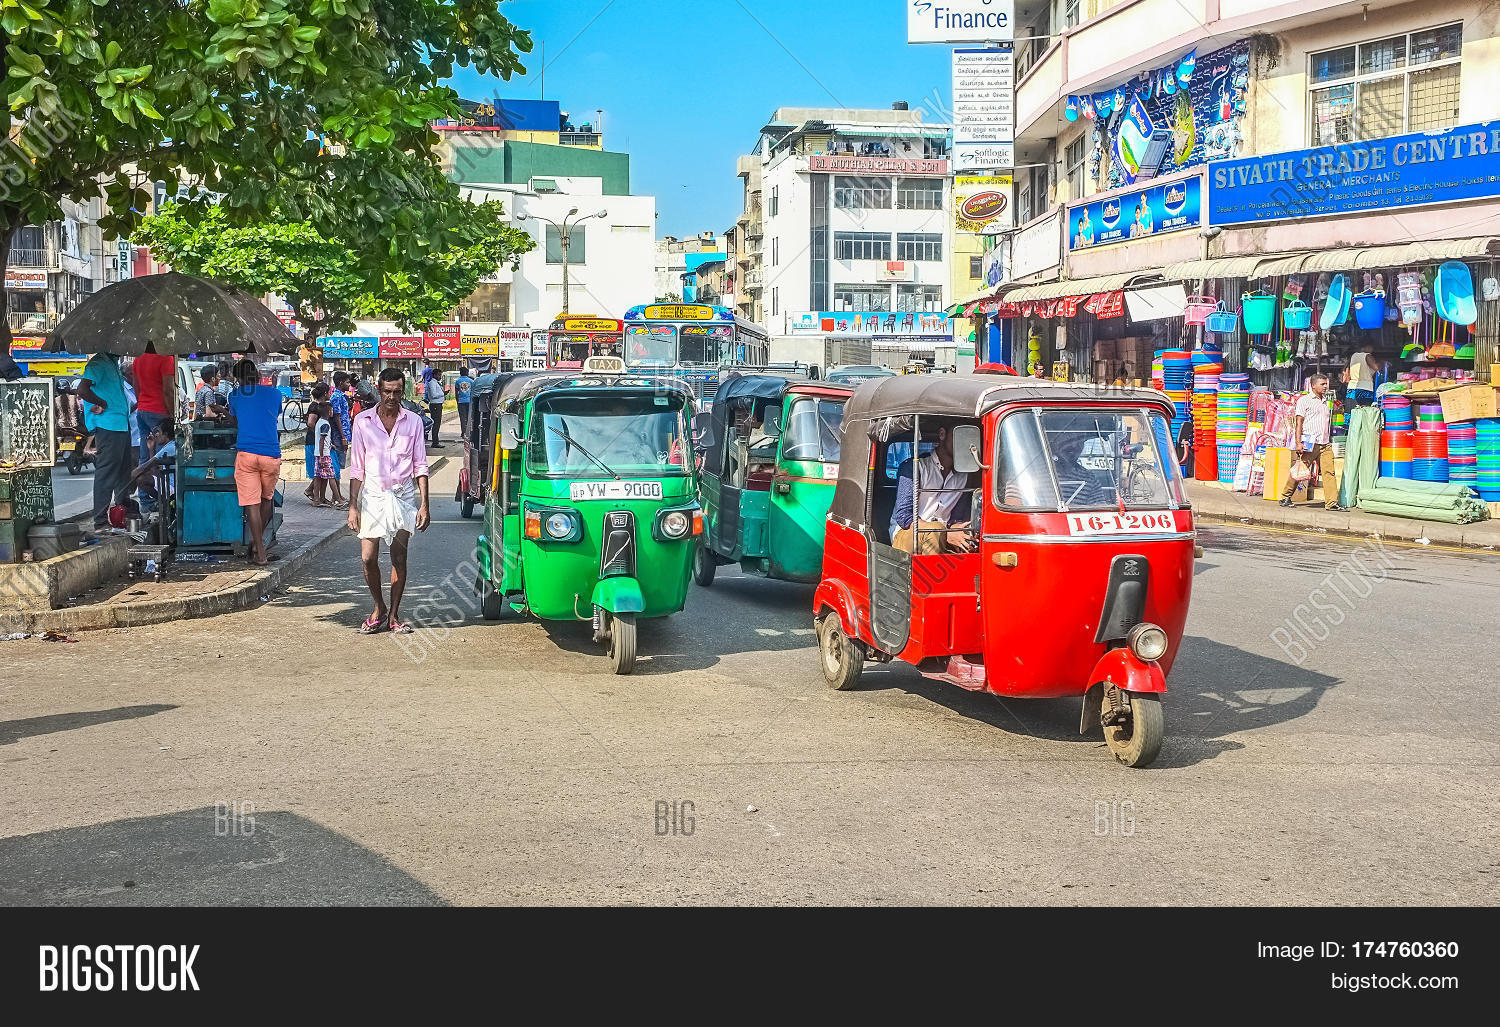 Traffic Colombo Image Photo Free Trial Bigstock